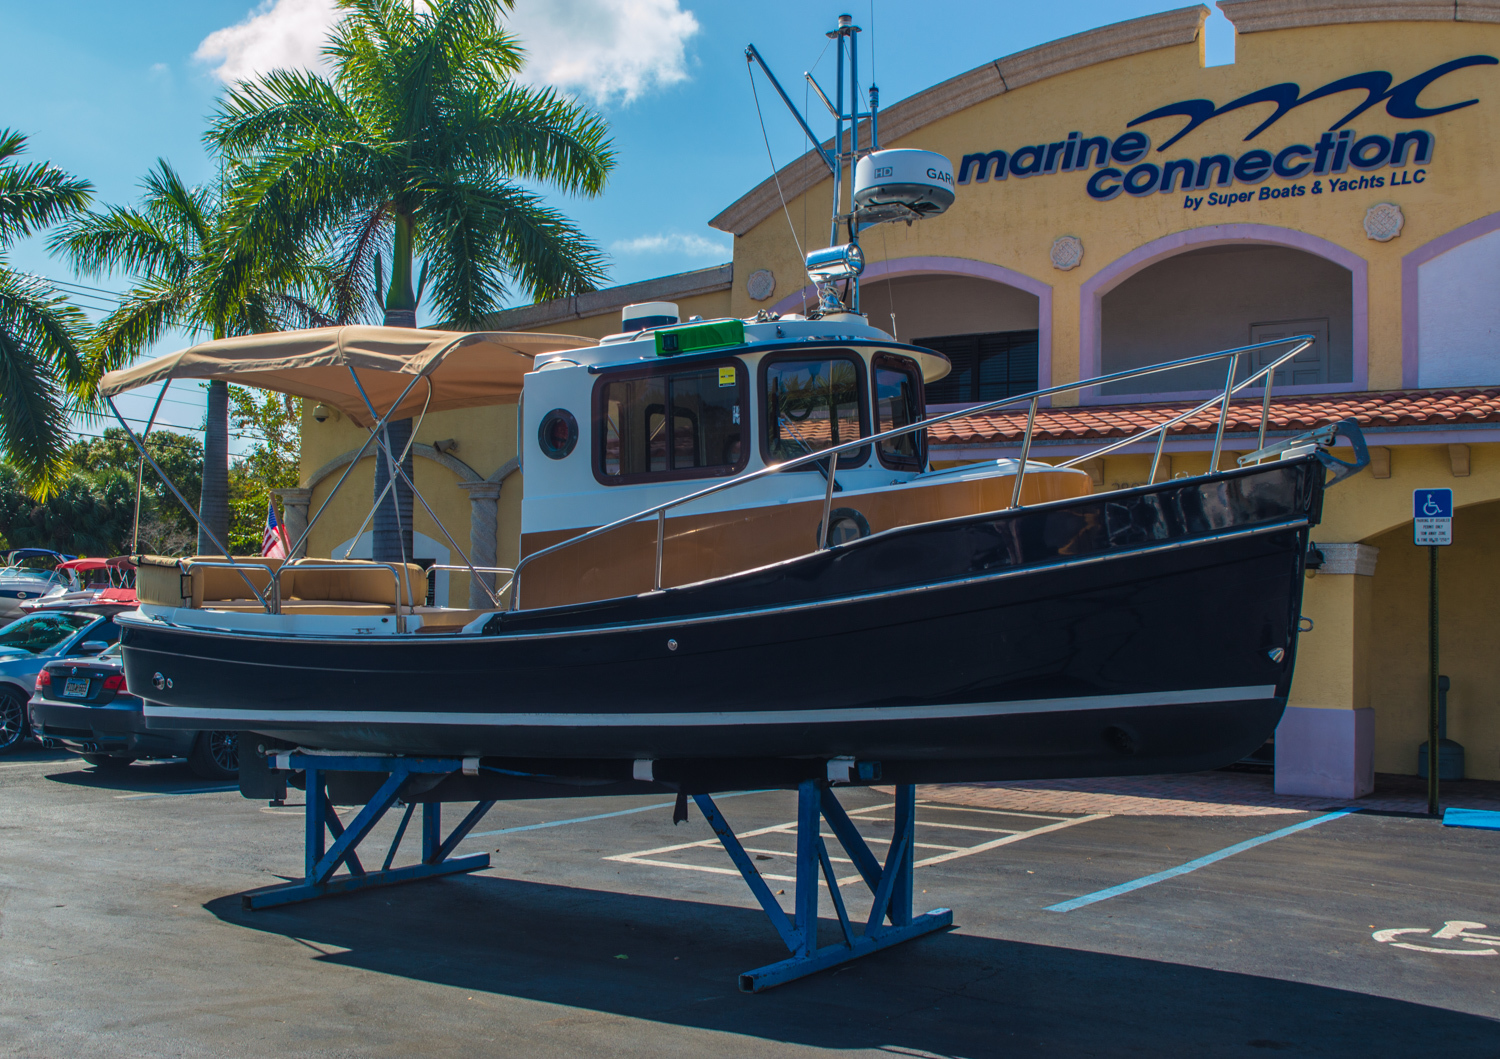 Thumbnail 1 for Used 2010 Ranger Tug R21 EC boat for sale in West Palm Beach, FL